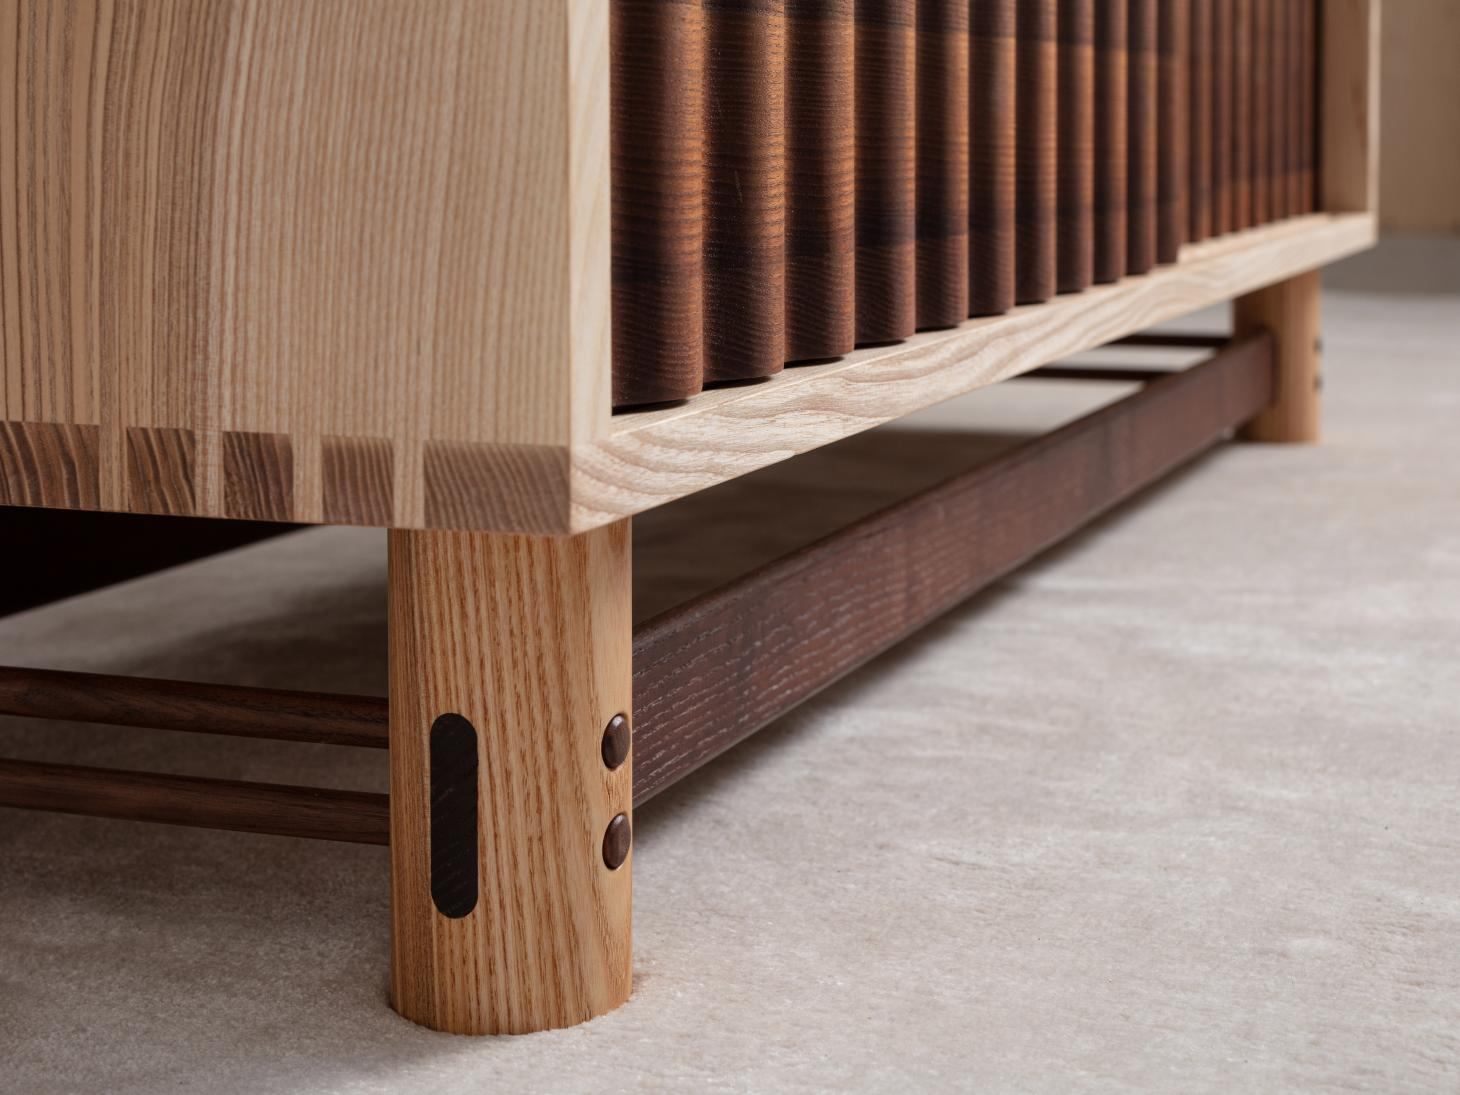 Wooden furniture joinery details